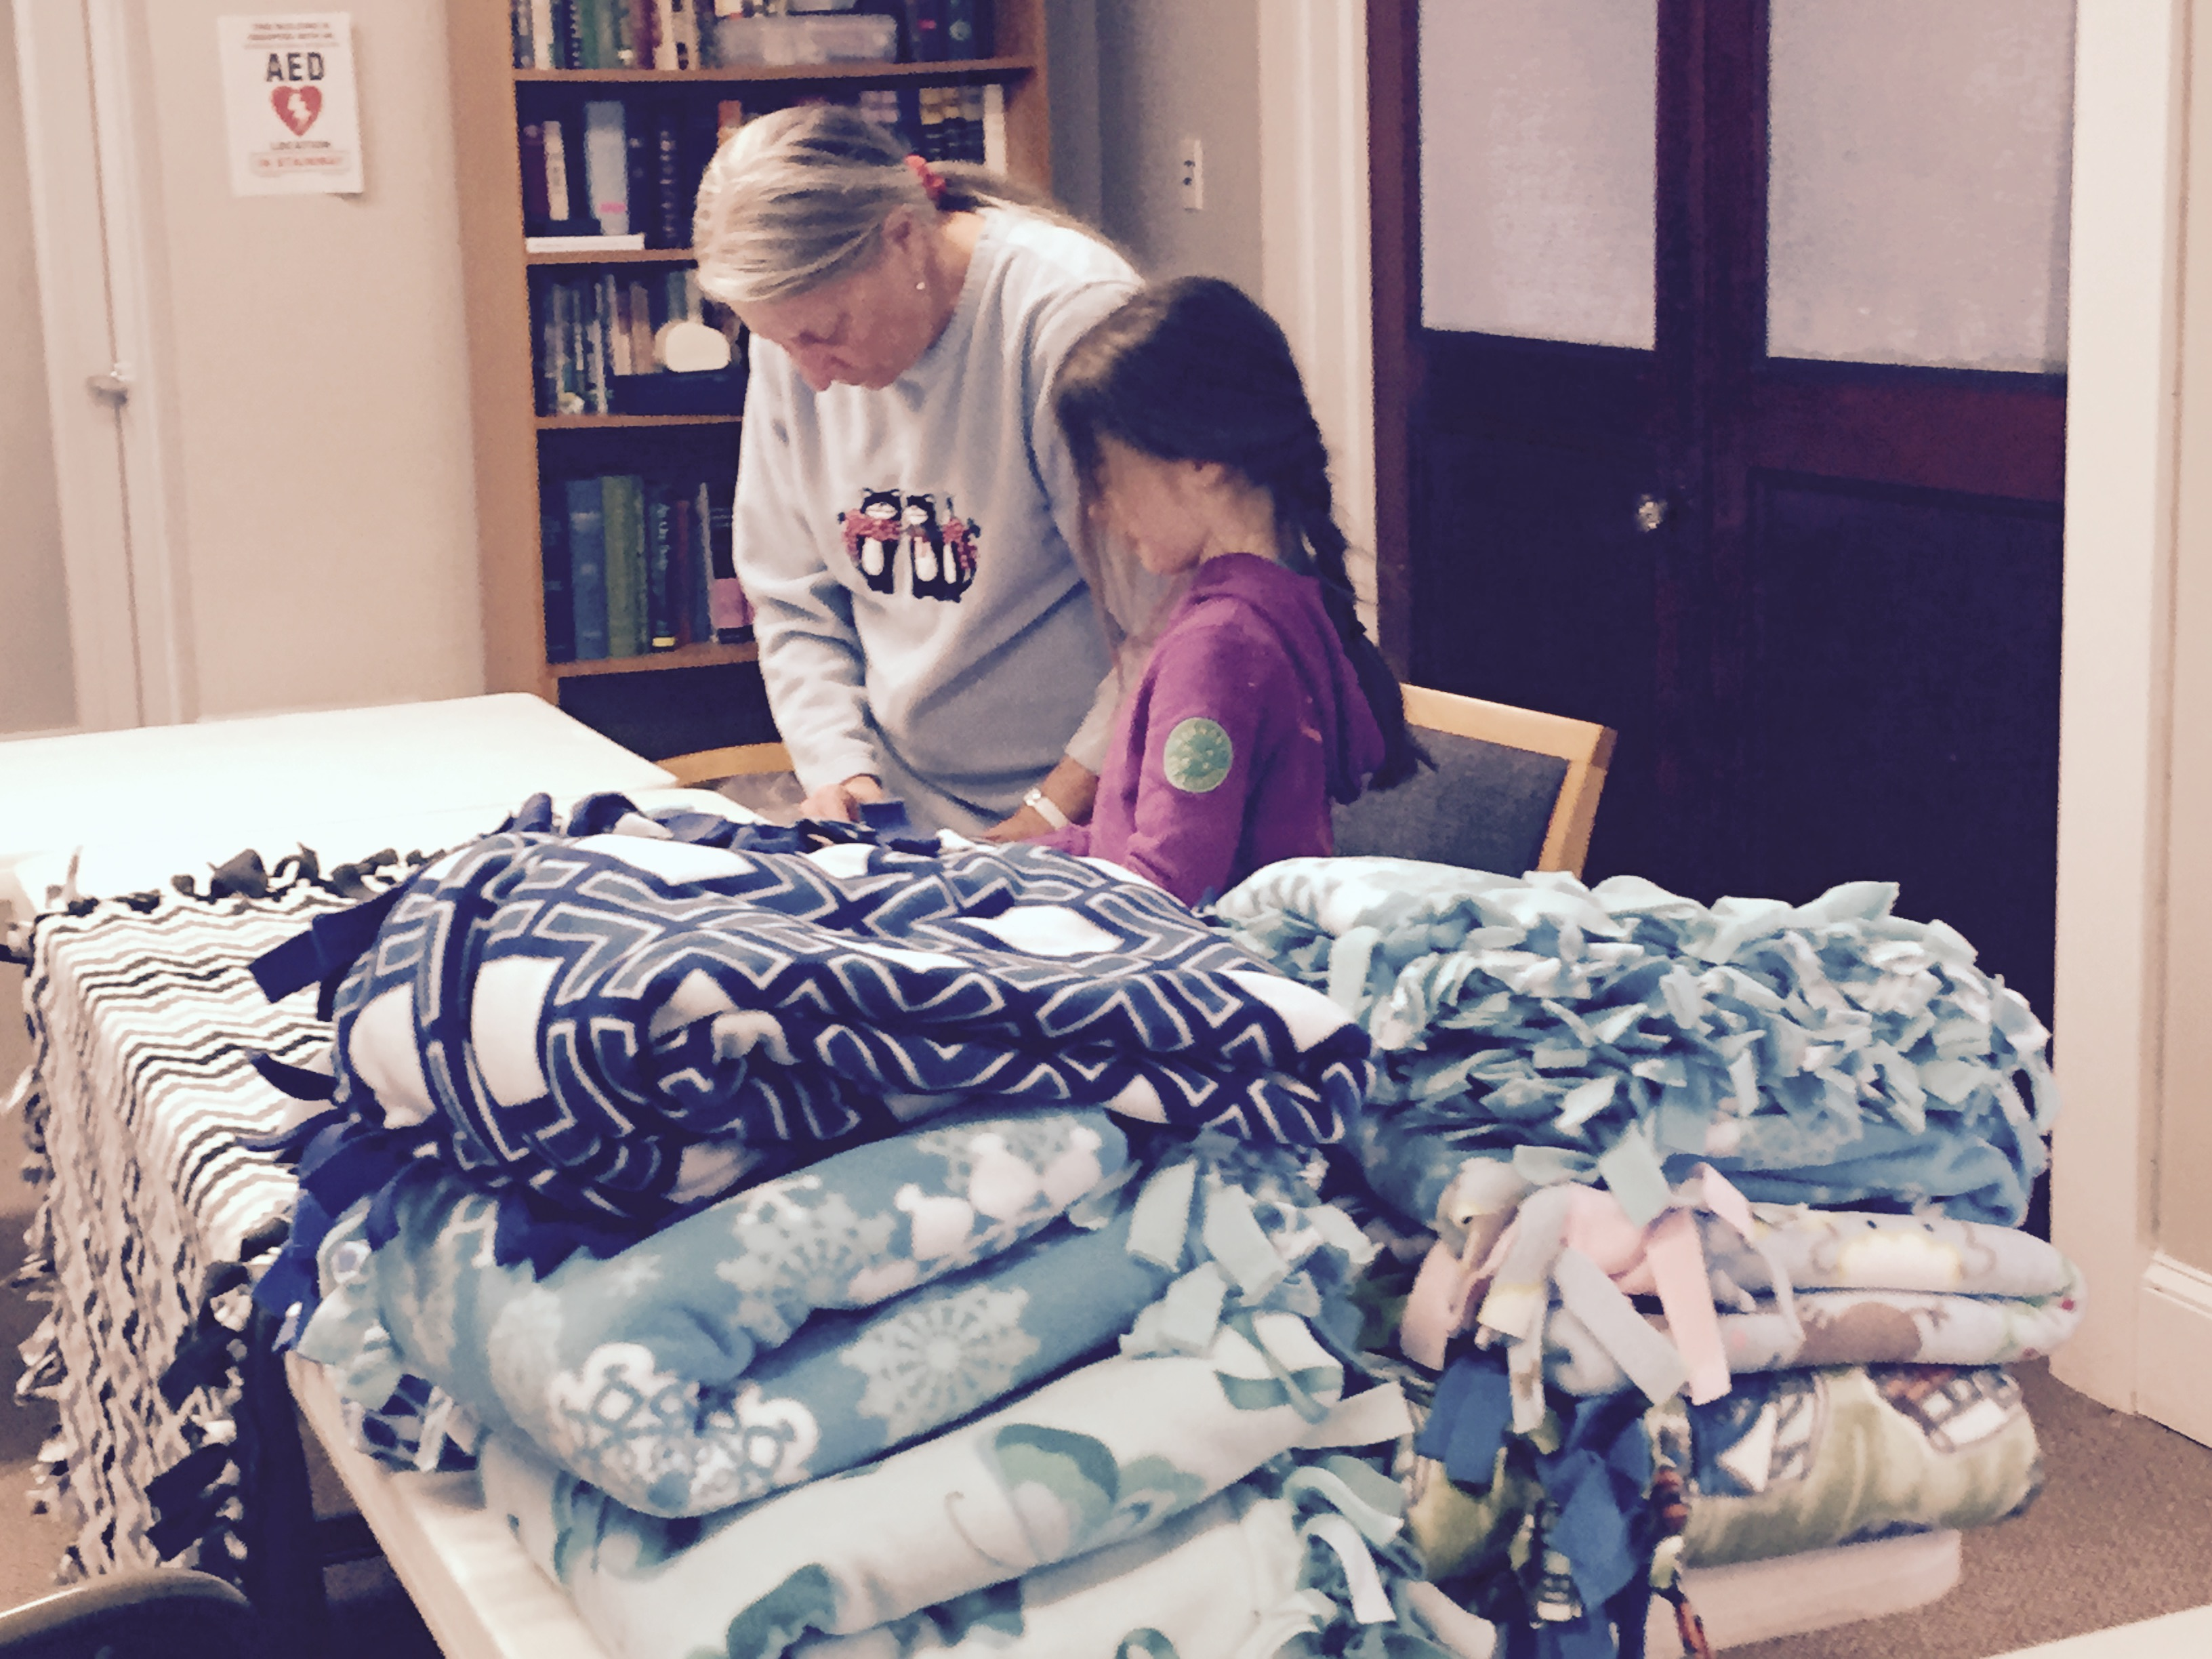 Volunteers prepare the blankets for delivery to those in need.